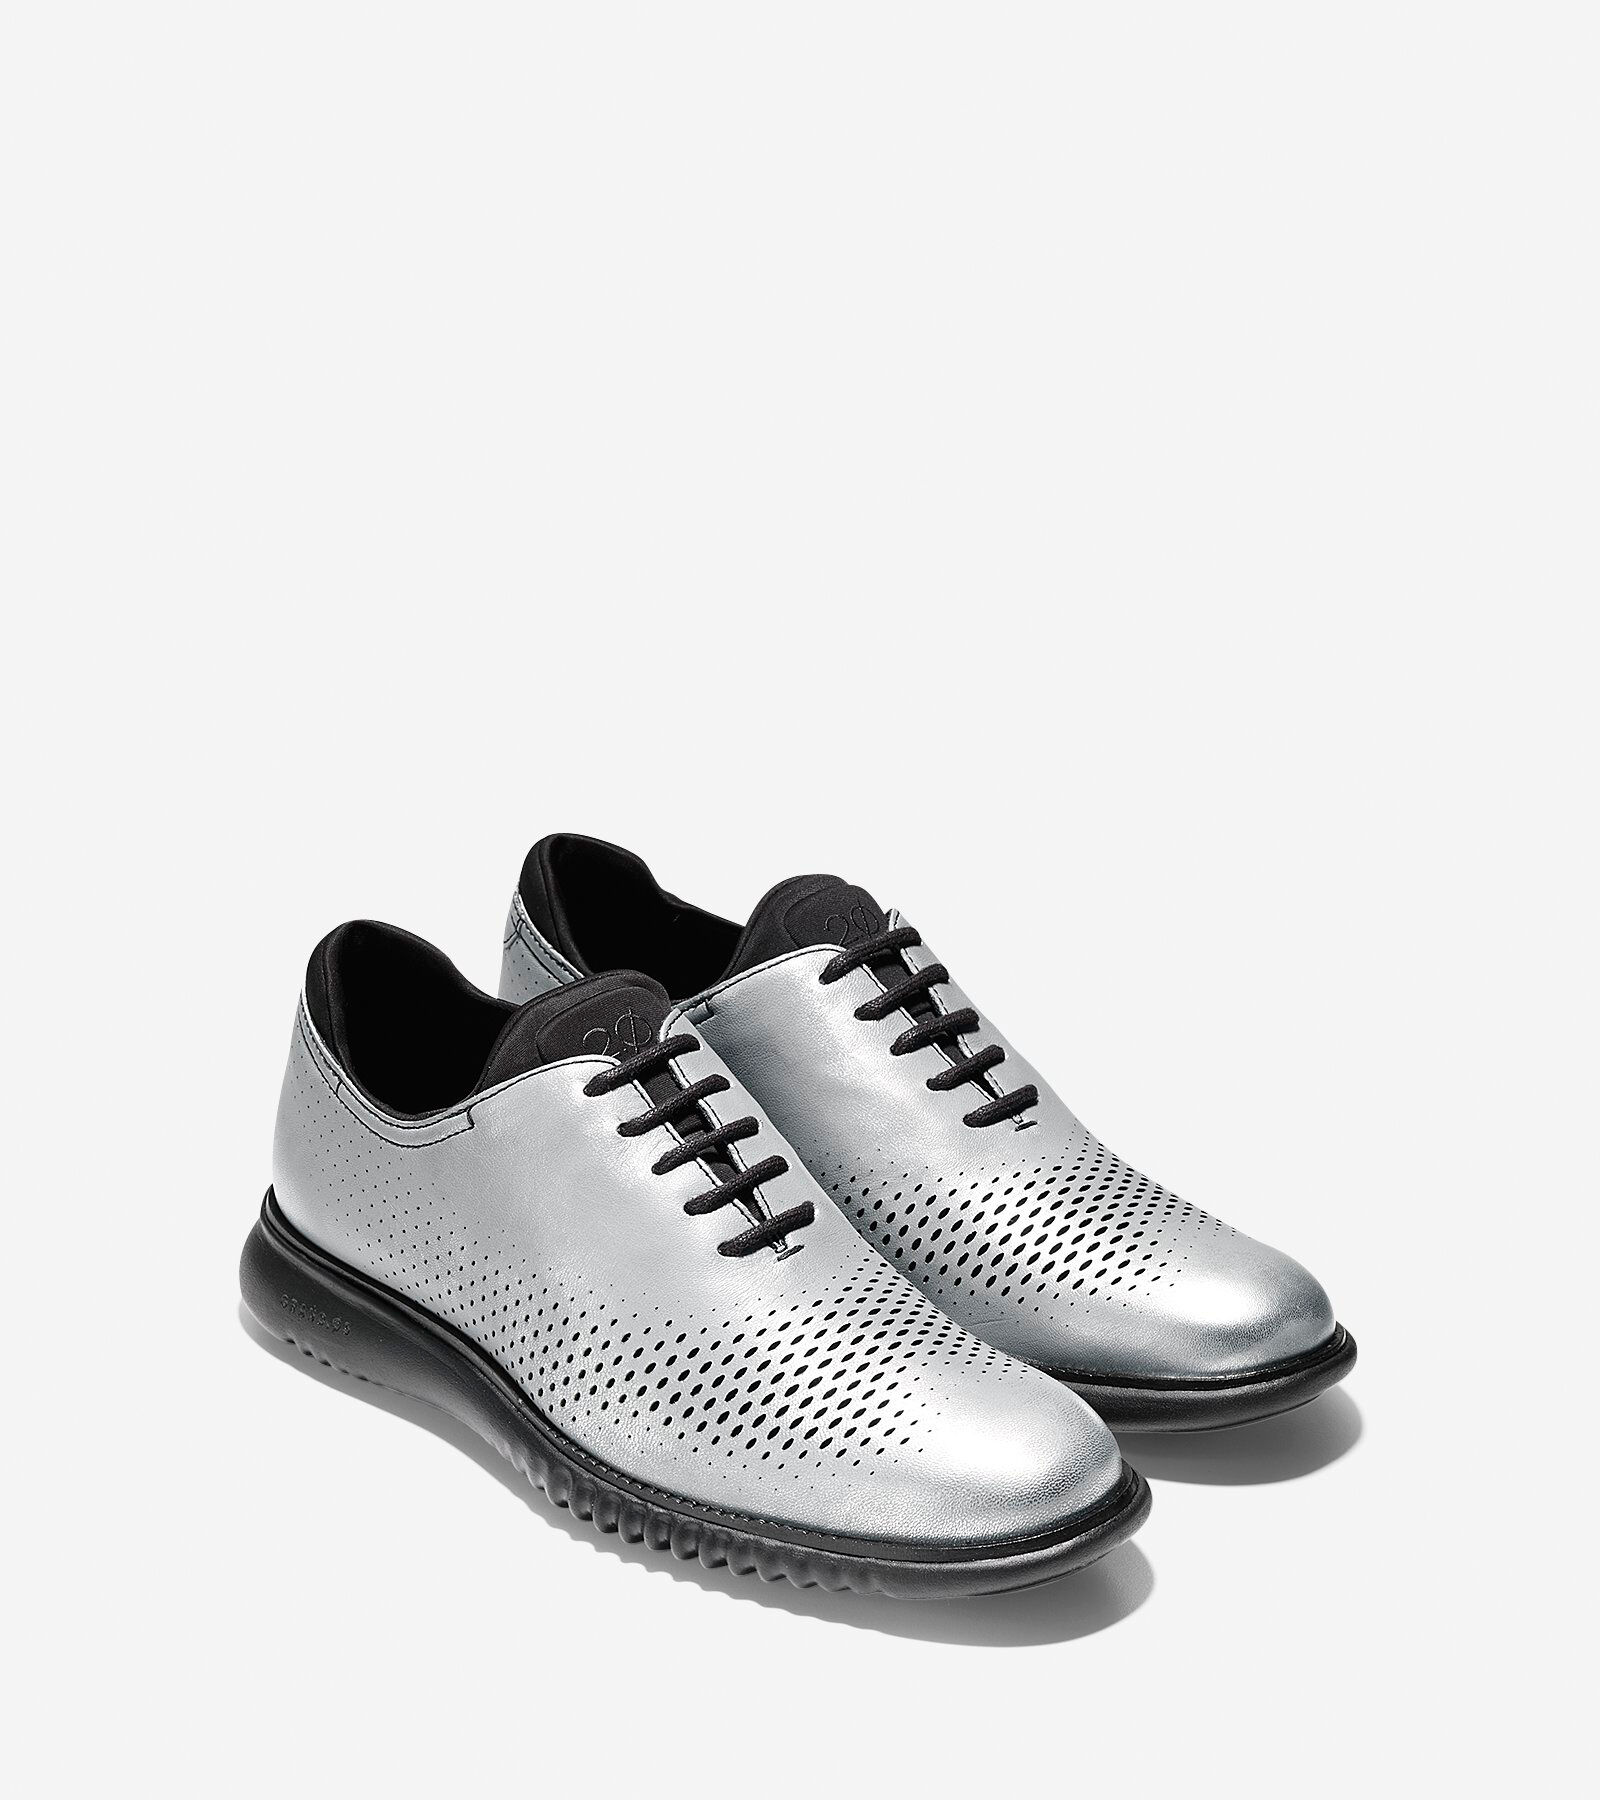 ZERØGRAND Laser Wingtip Oxford; Men's 2.ZERØGRAND Laser Wingtip Oxford ...